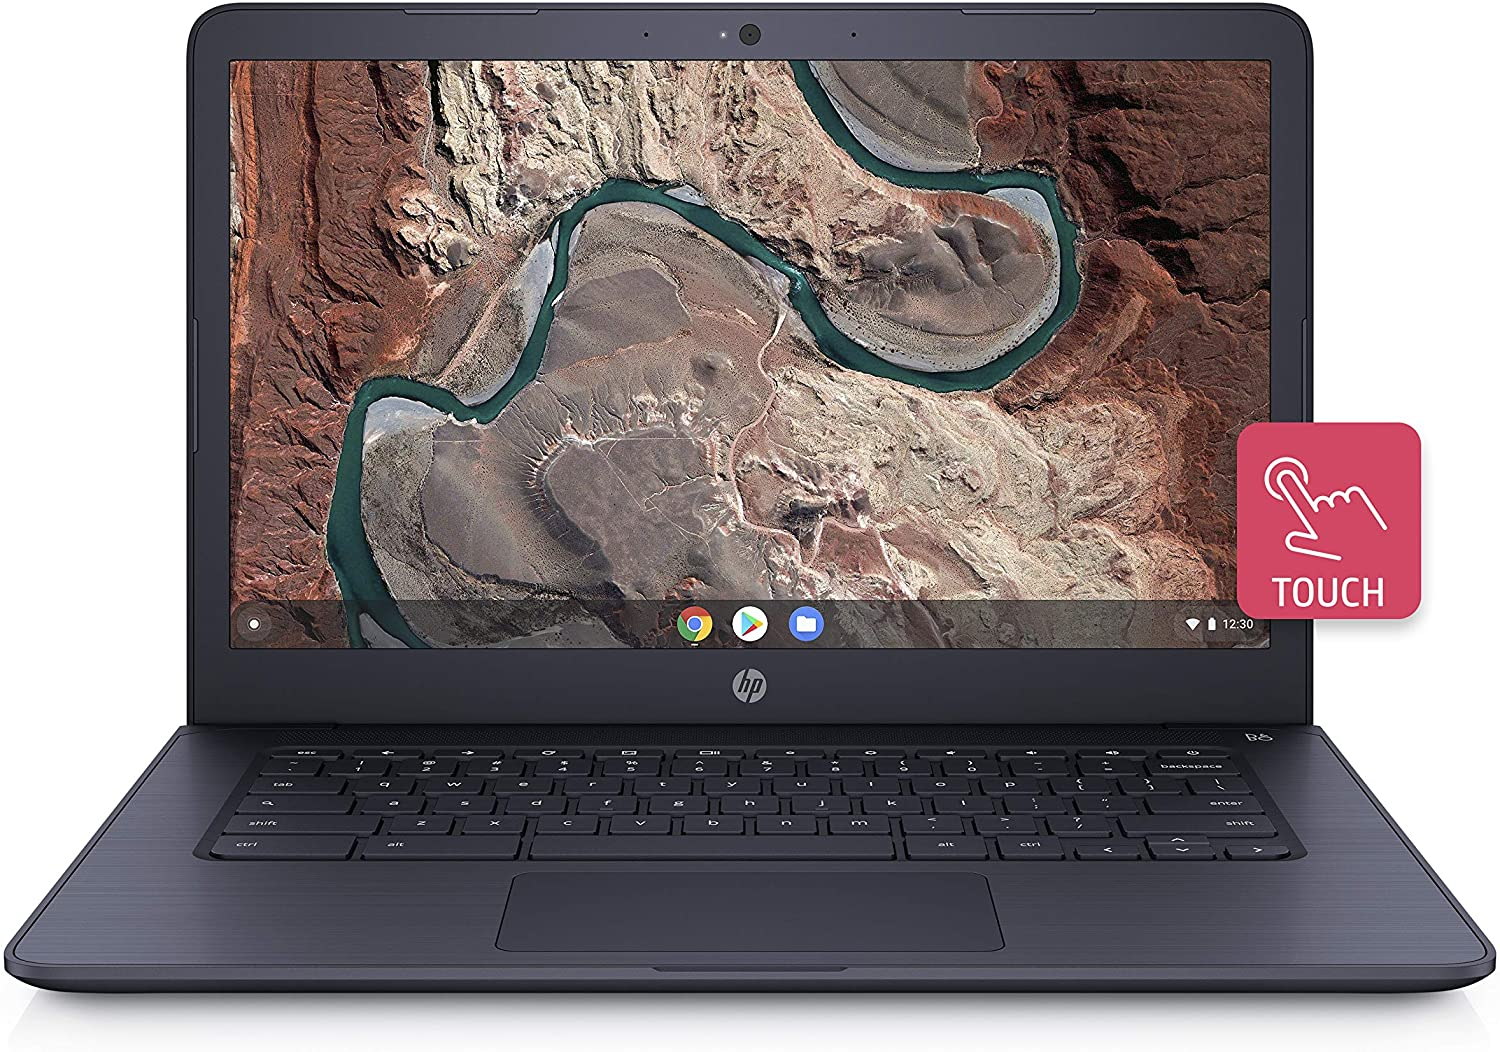 HP Chromebook 14-inch Laptop with 180-Degree -Hinge, Touchscreen Display, AMD Dual-Core A4-9120 Processor, 4 GB SDRAM, 32 GB eMMC Storage, Chrome OS (14-db0090nr, Ink Blue)